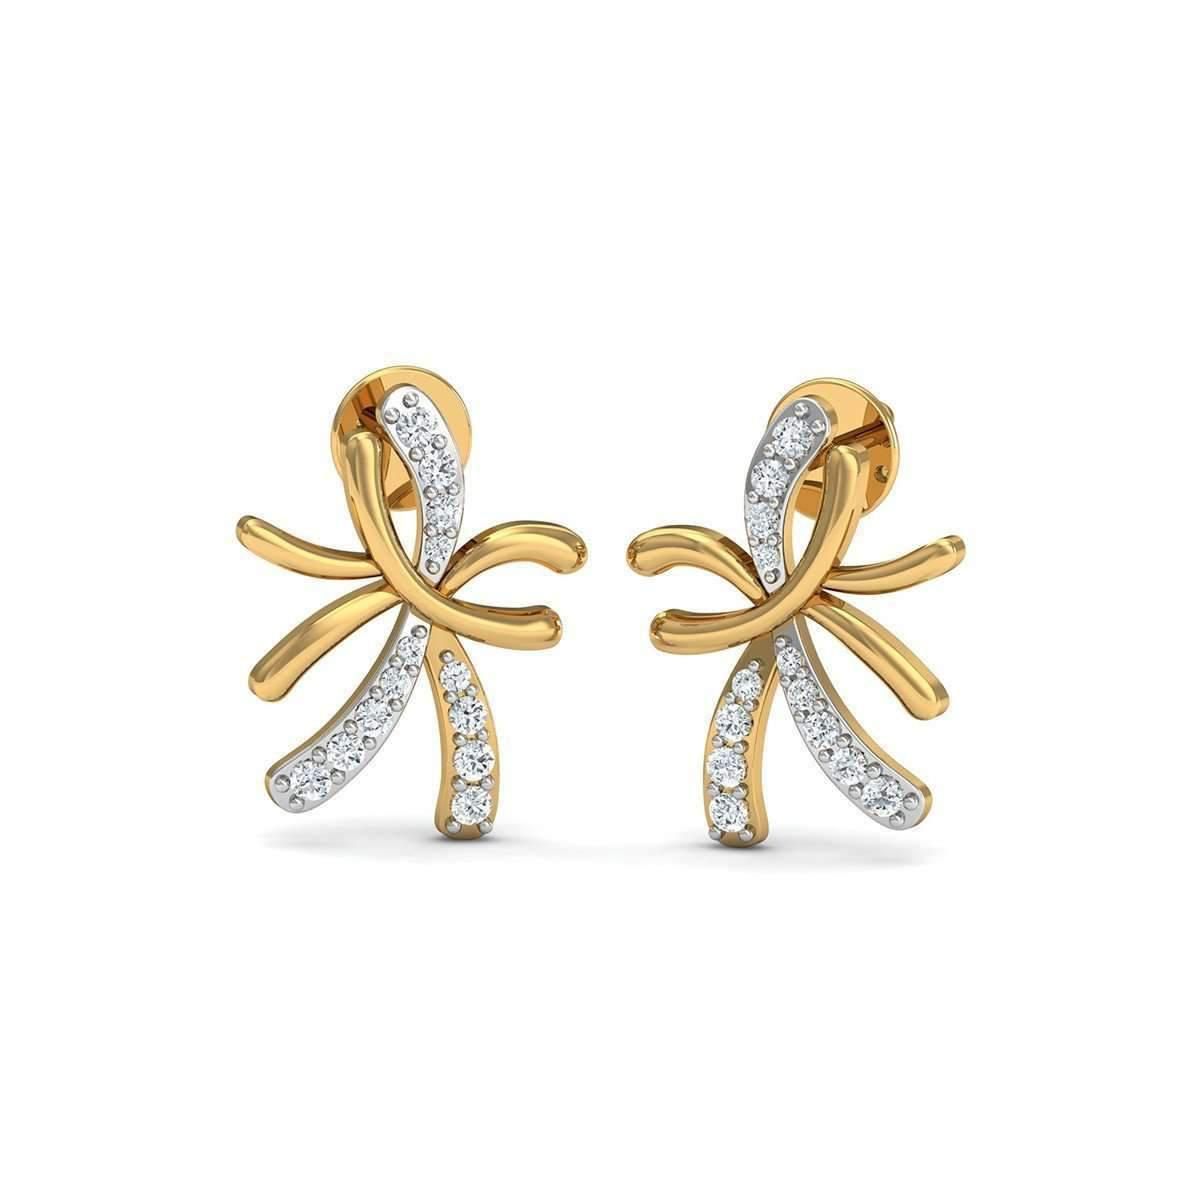 Diamoire Jewels Nature Inspired 10kt Yellow Gold and Diamond Pave Earrings lOMF6bu